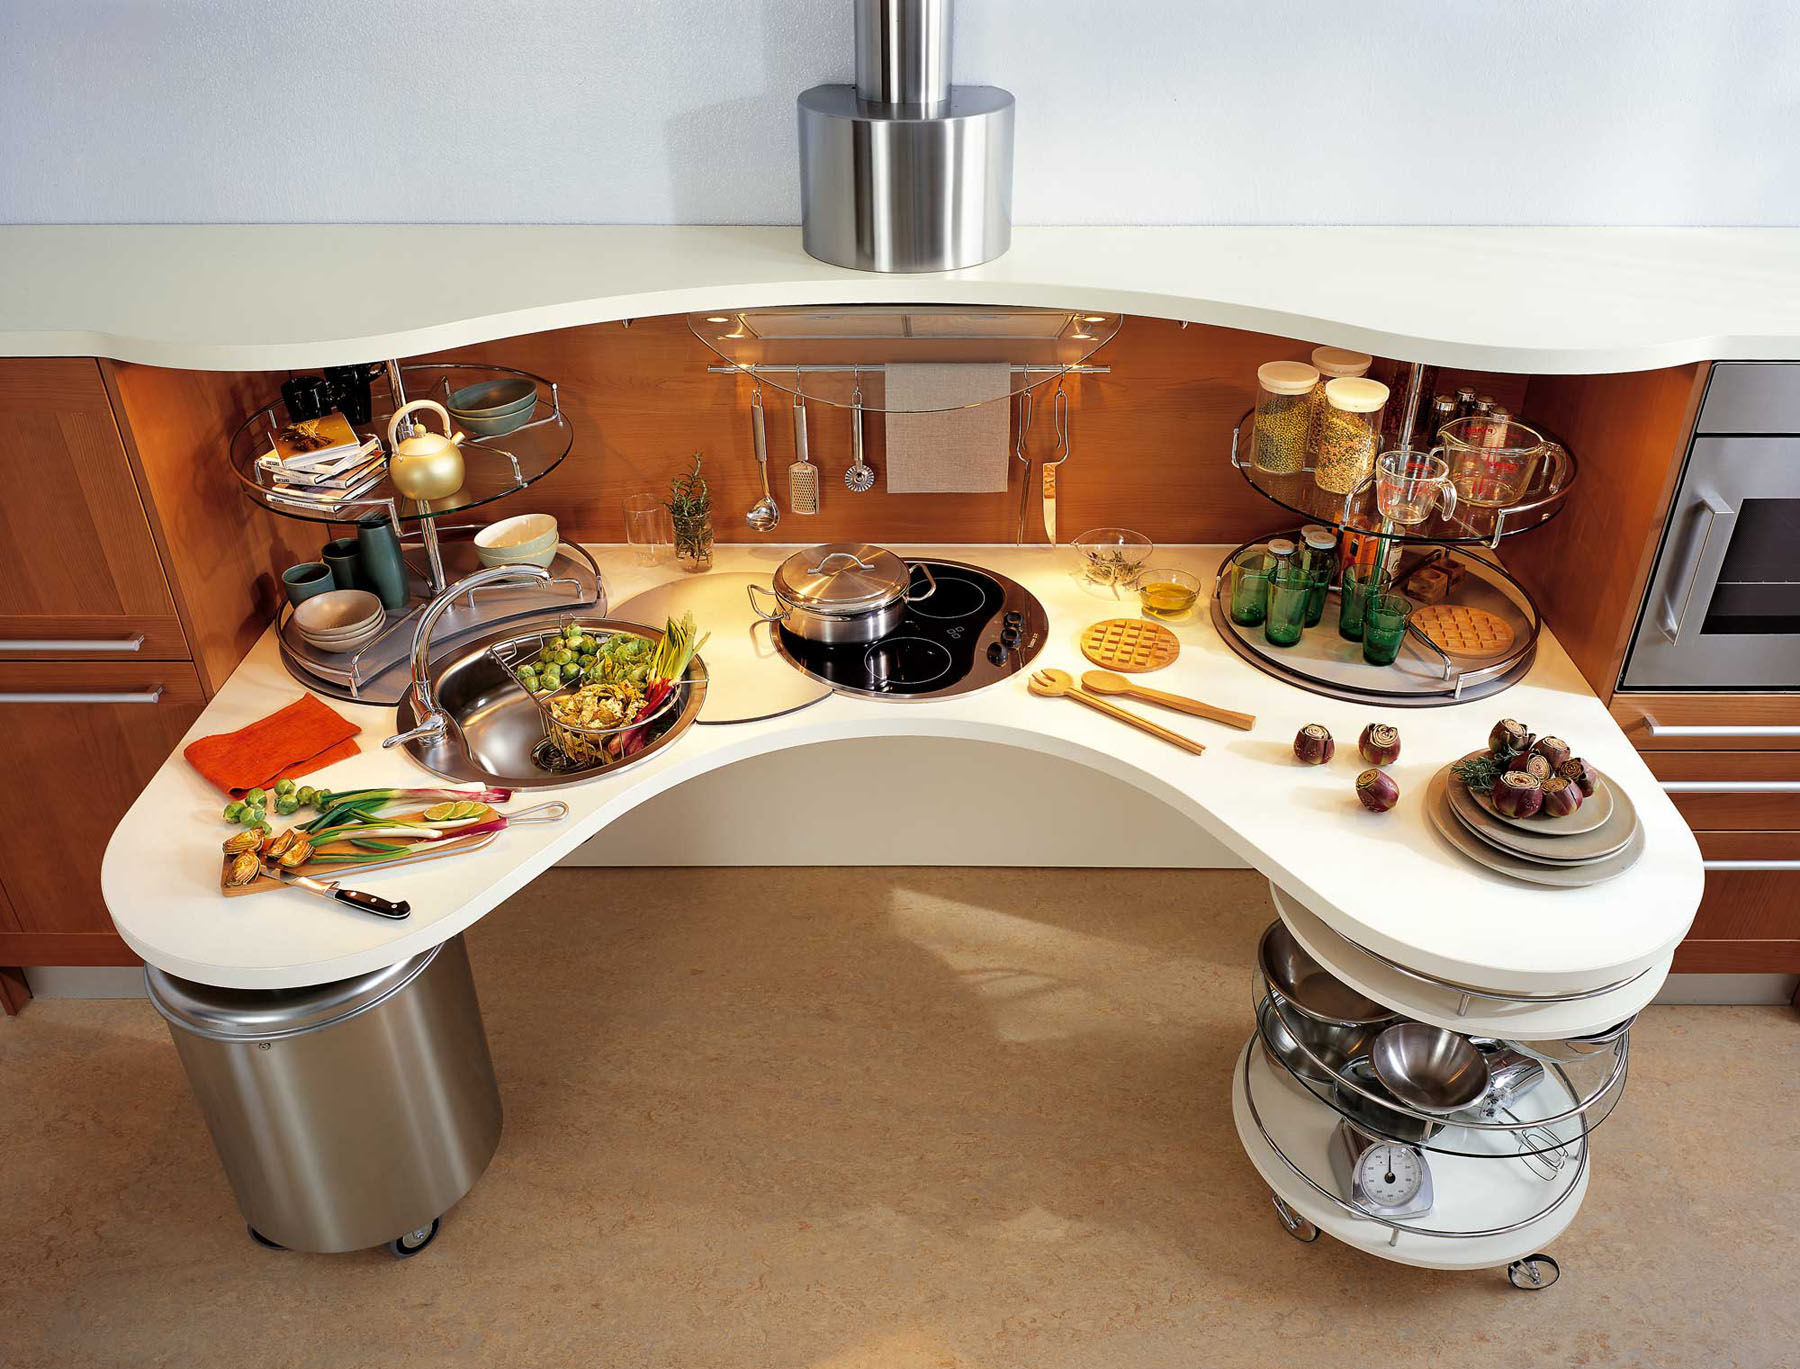 Superieur Ergonomic Italian Kitchen Design Suitable For Wheelchair Users